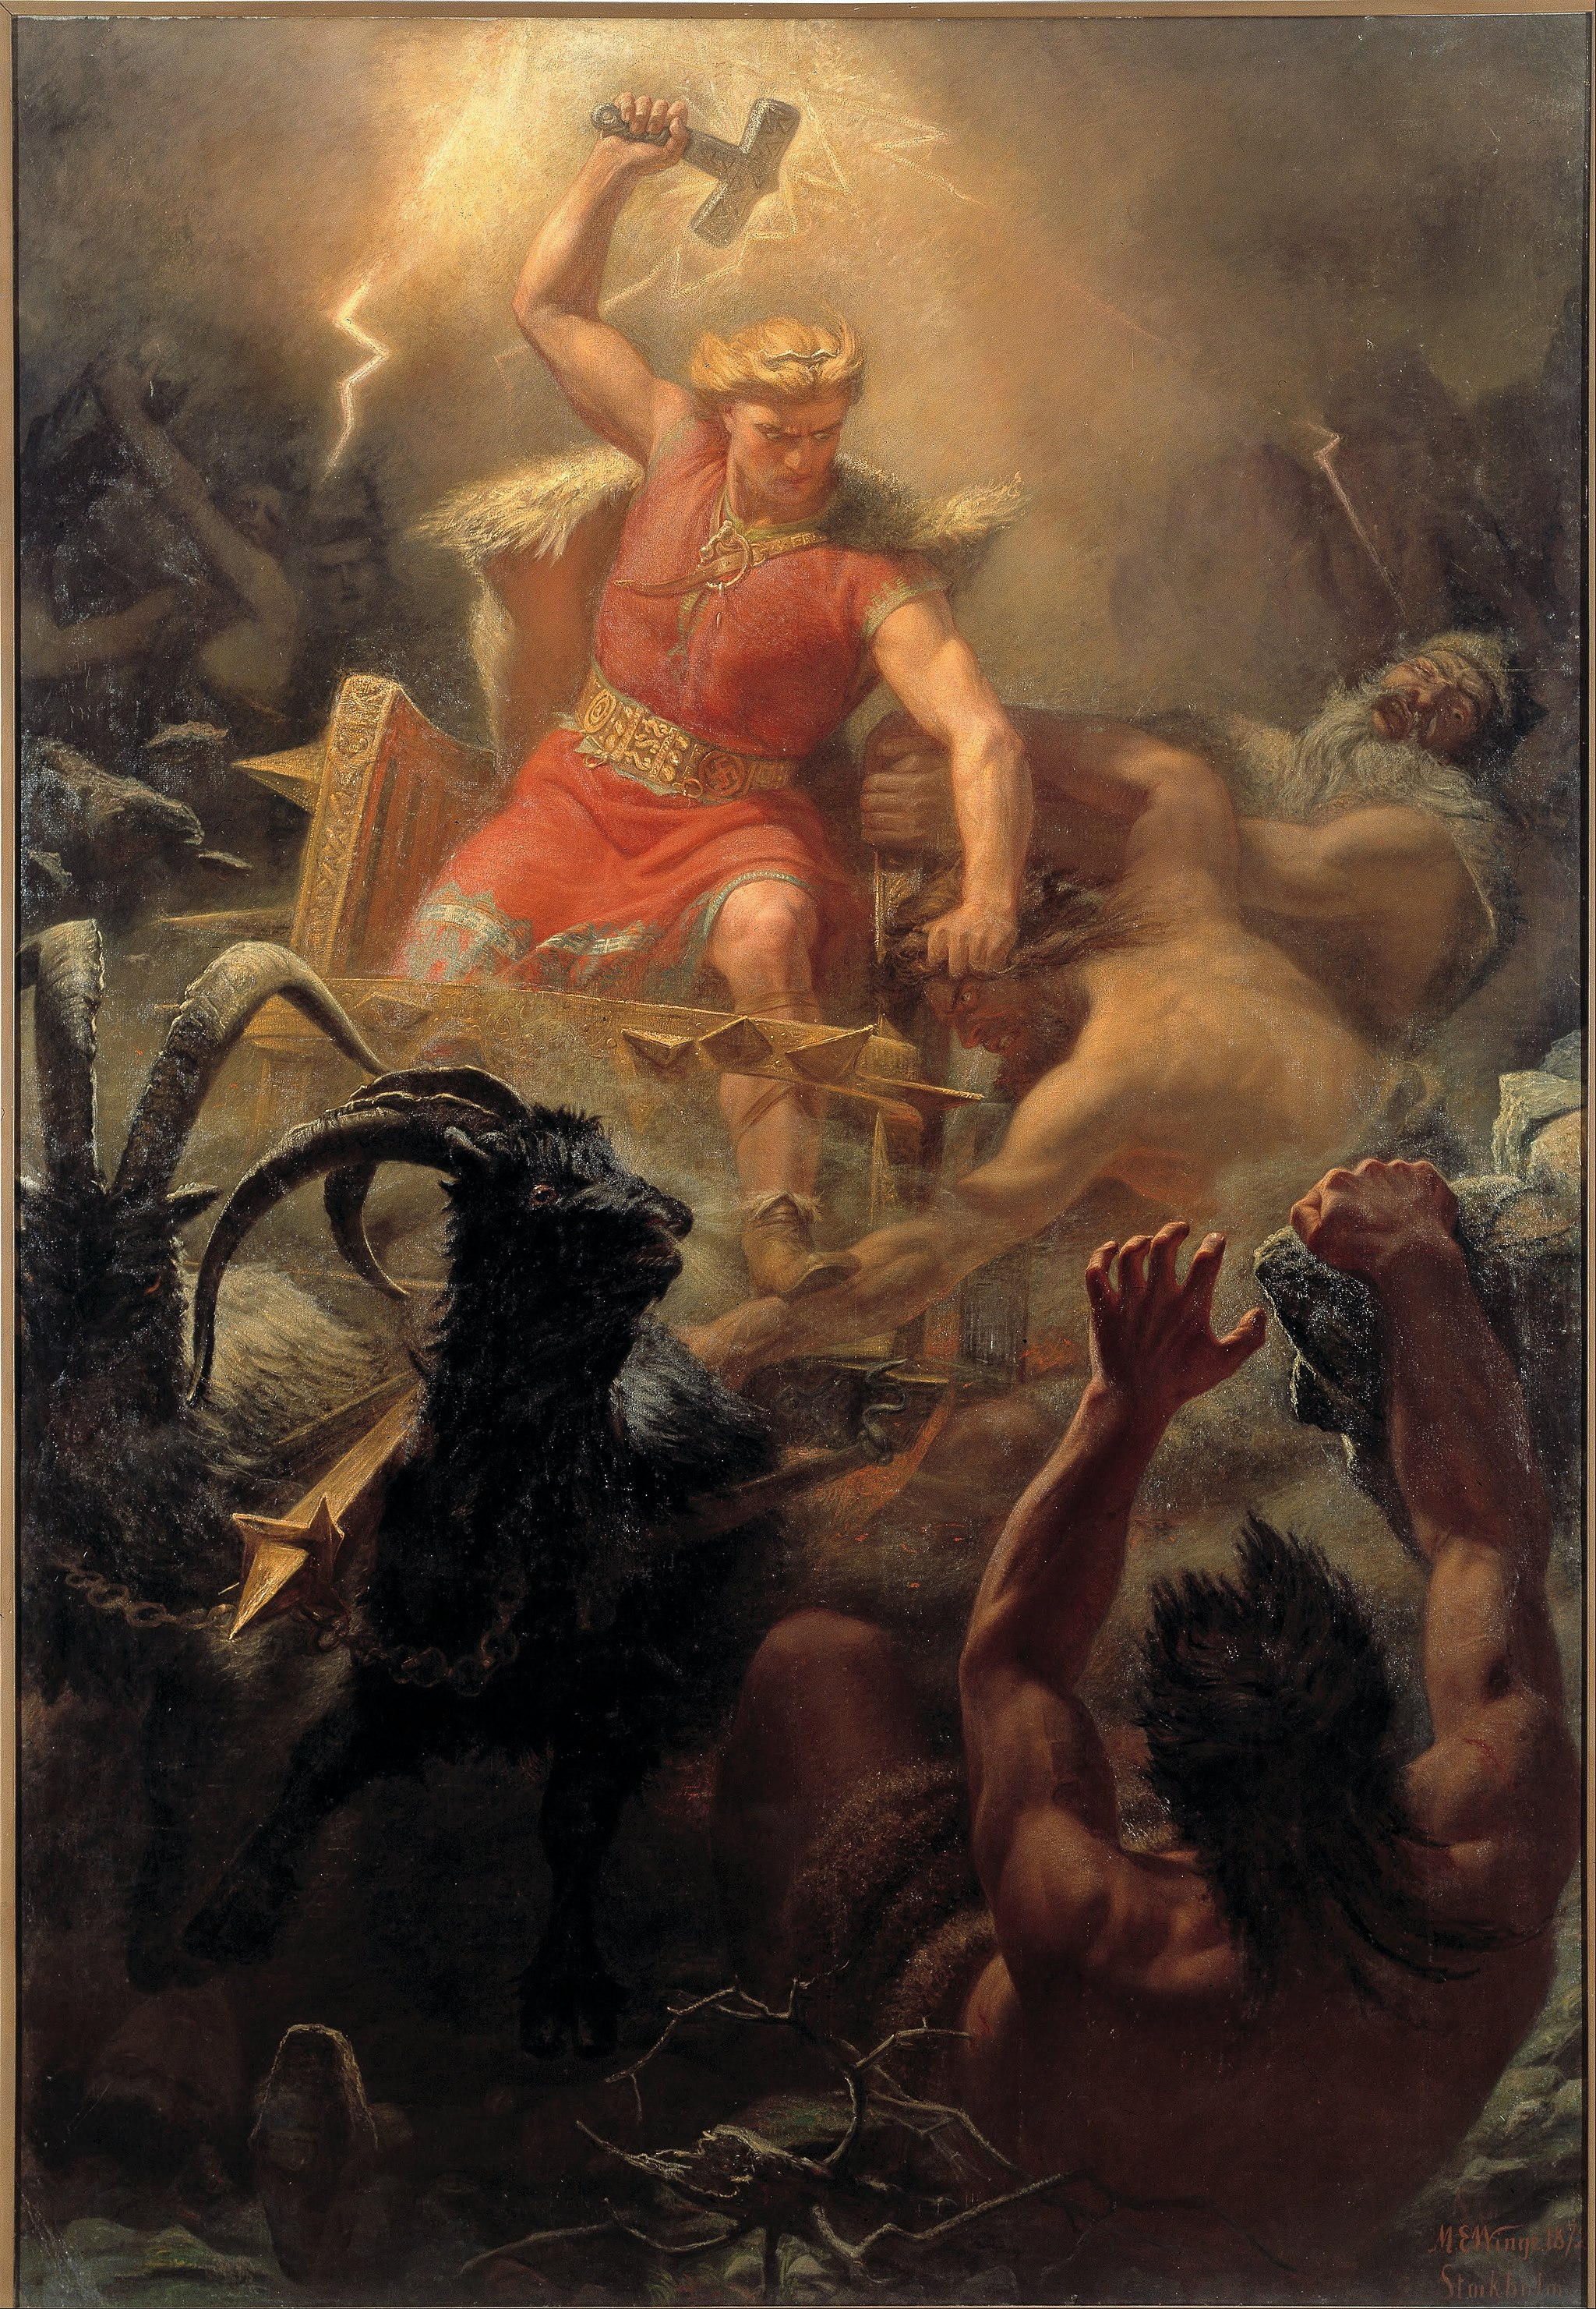 Mårten Eskil Winge - Tor's Fight with the Giants - Google Art Project